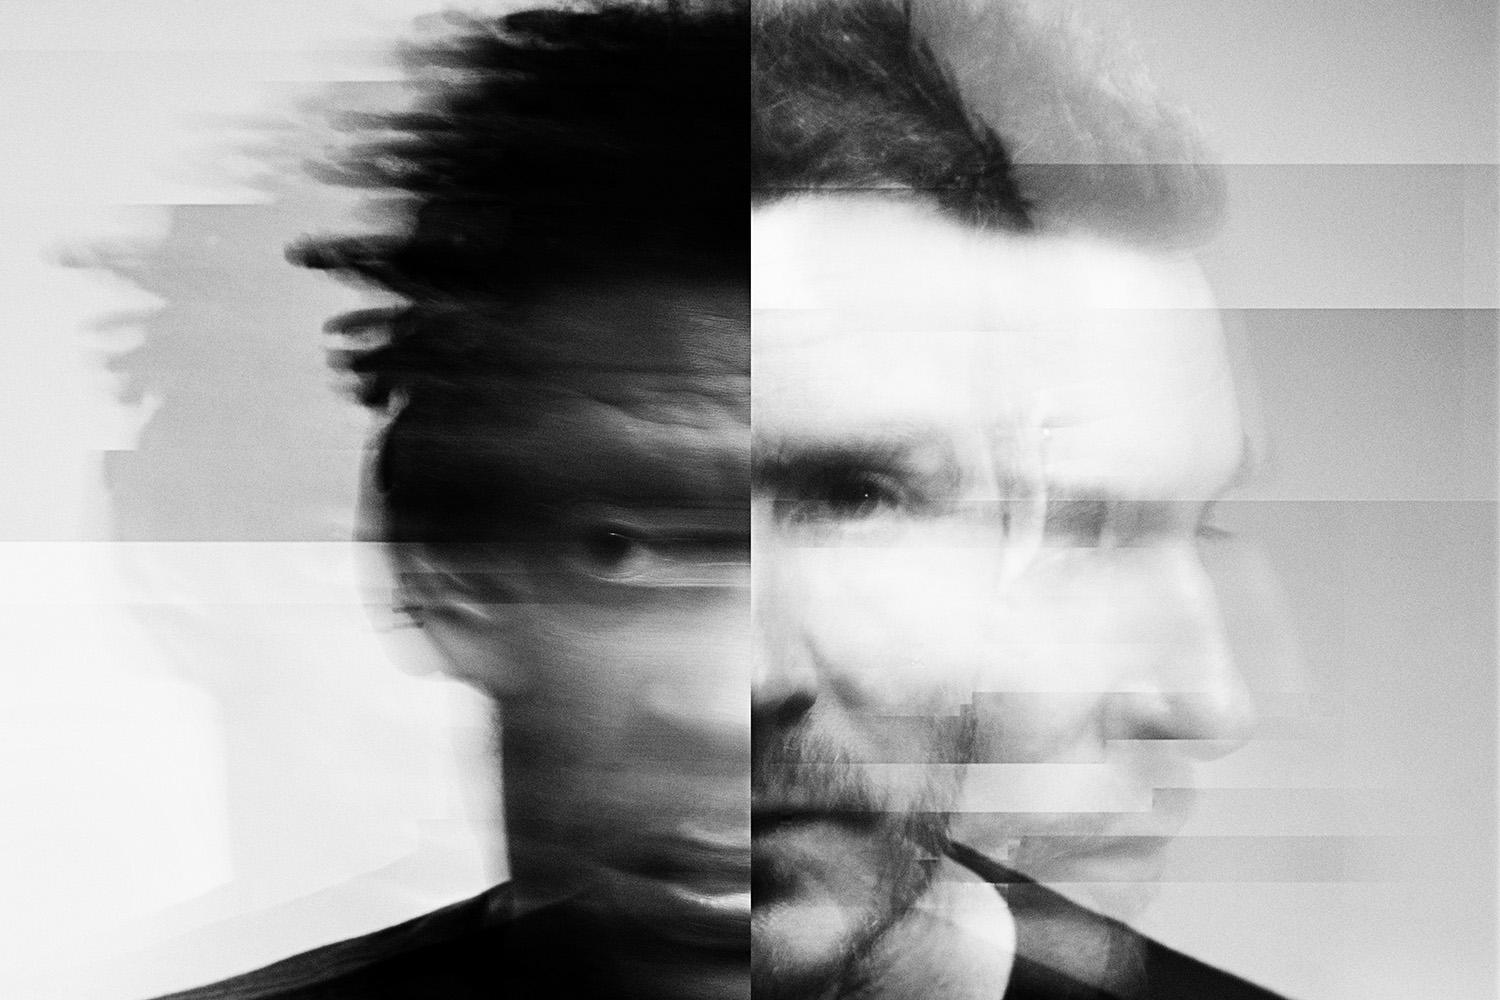 GELİYOR: MASSIVE ATTACK (VE YOUNG FATHERS)